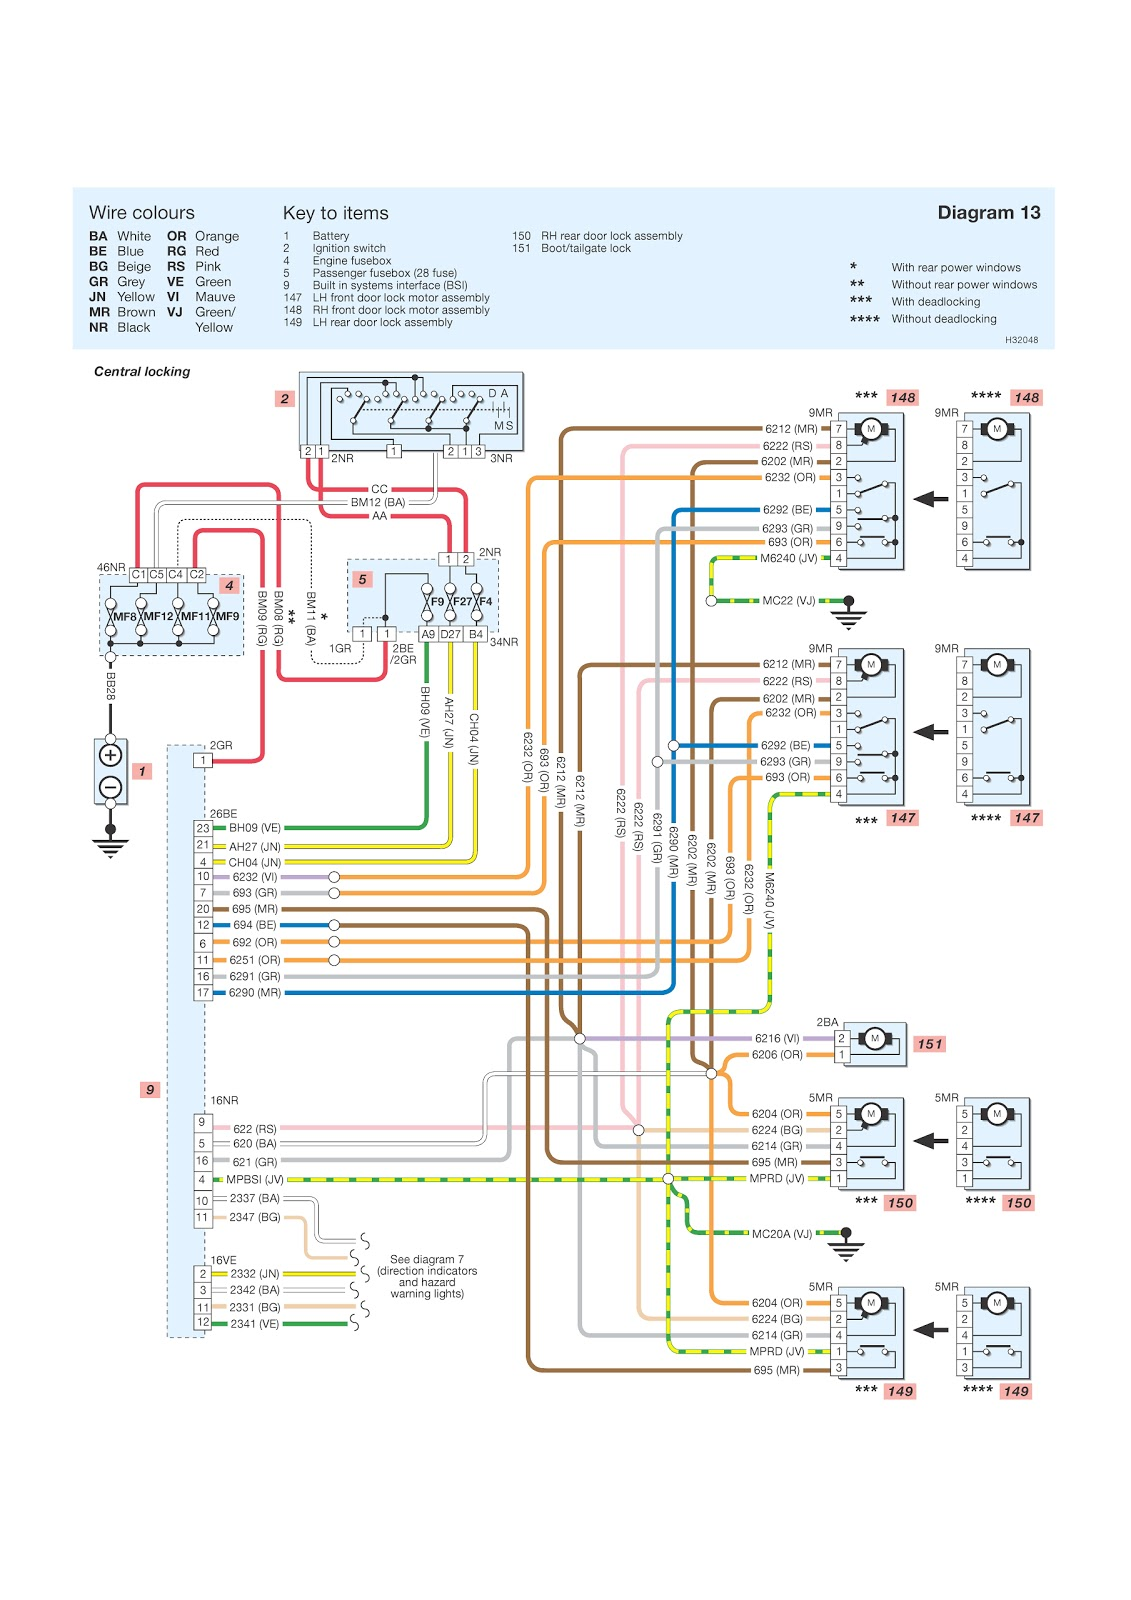 peugeot 306 phase 3 wiring diagram wiring diagram options peugeot 306 wiring diagram wiring diagram basic [ 1131 x 1600 Pixel ]